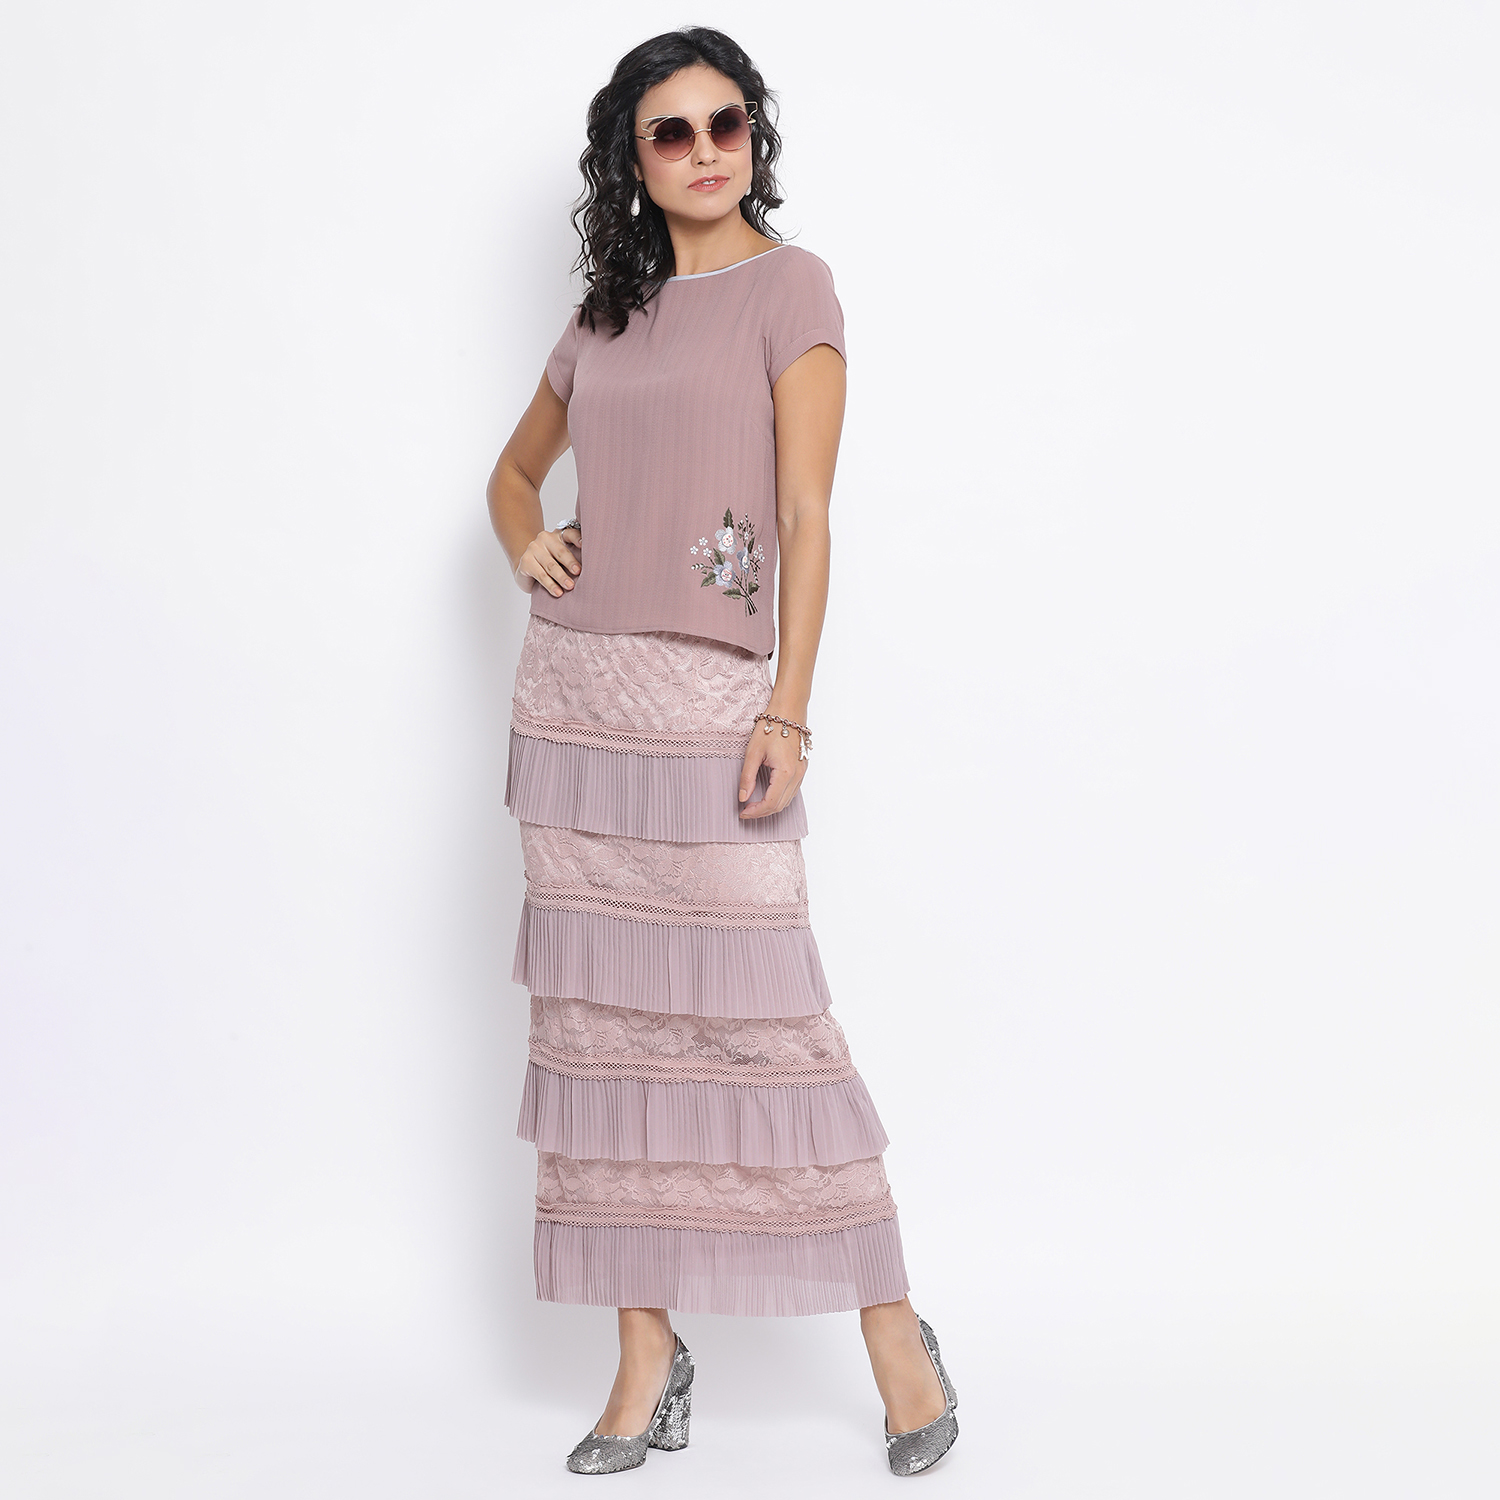 Buy Rose Pink Net Frill Skirt With Lace For Women